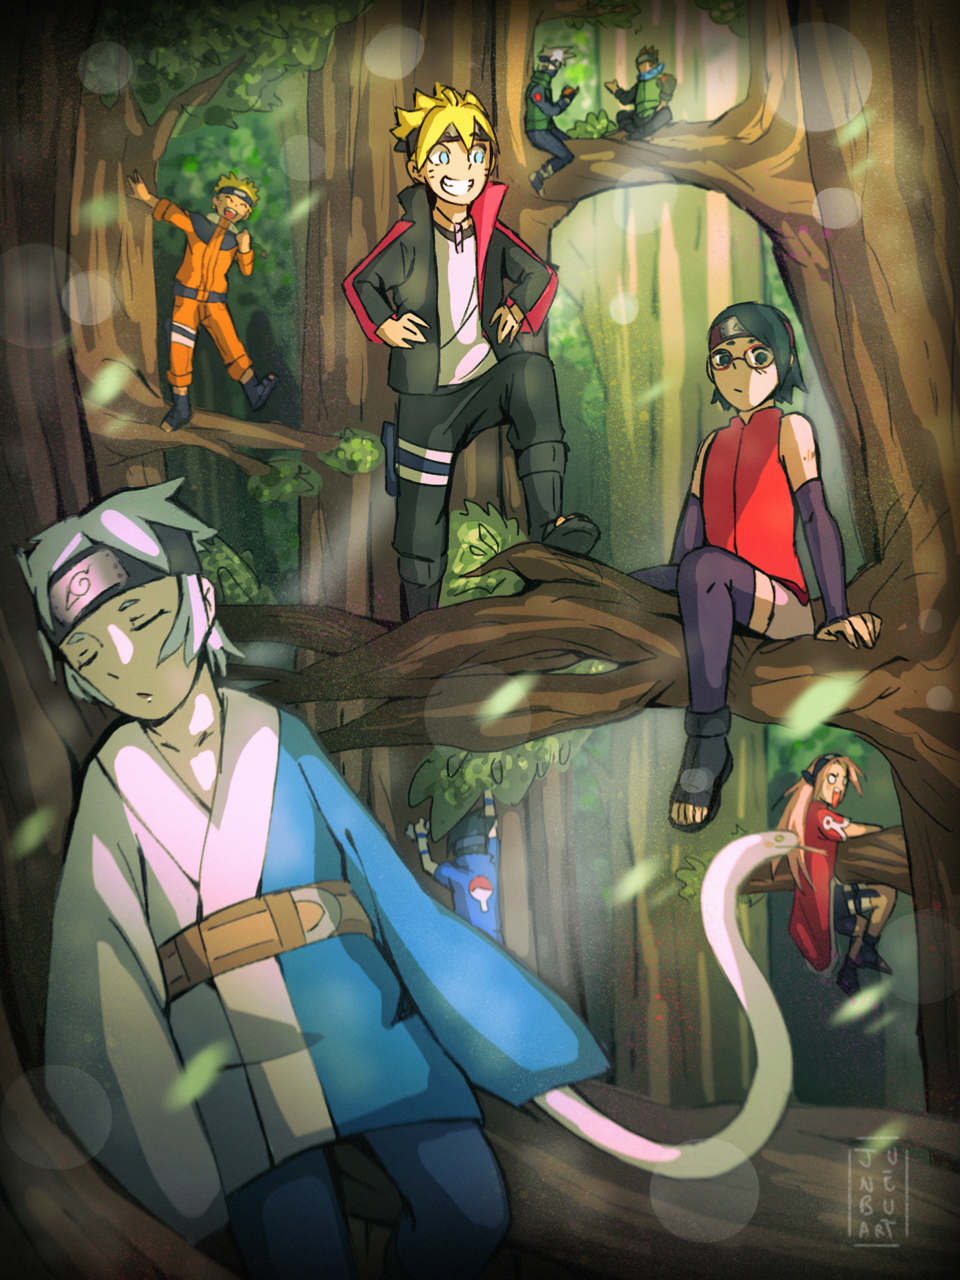 Boruto and Naruto team 7 in the forest